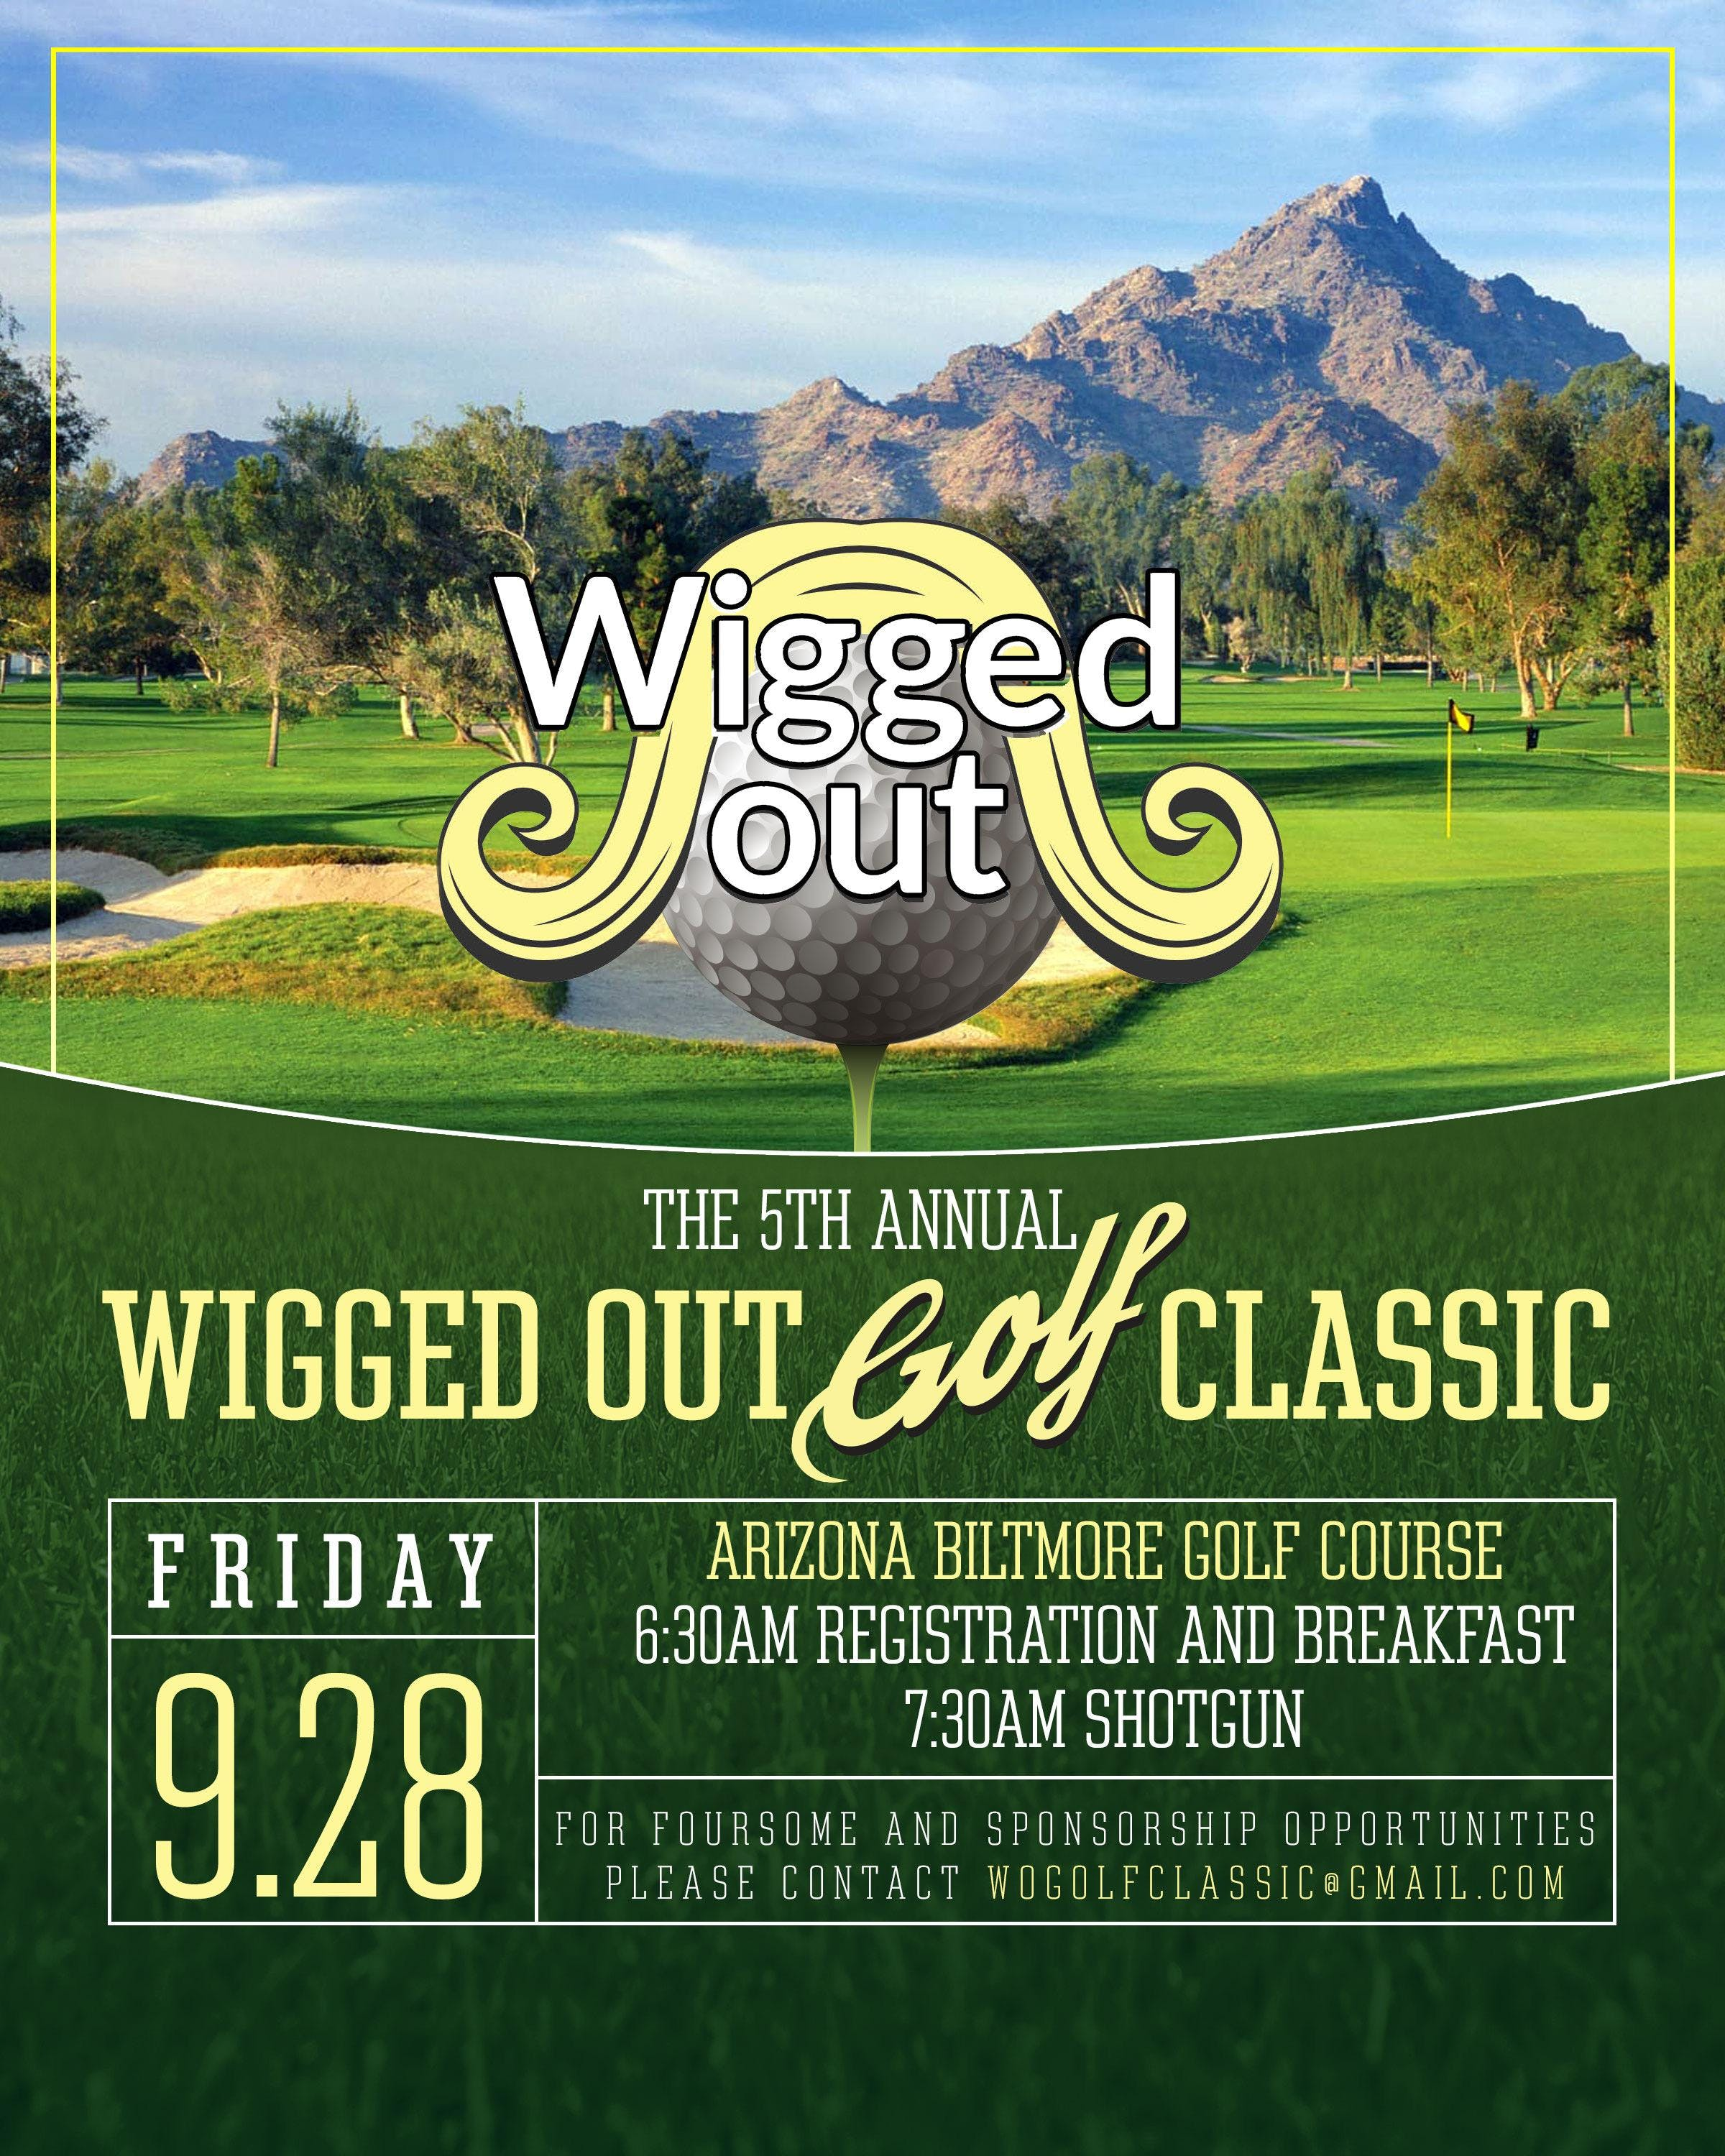 Fifth Annual Wigged Out Golf Classic